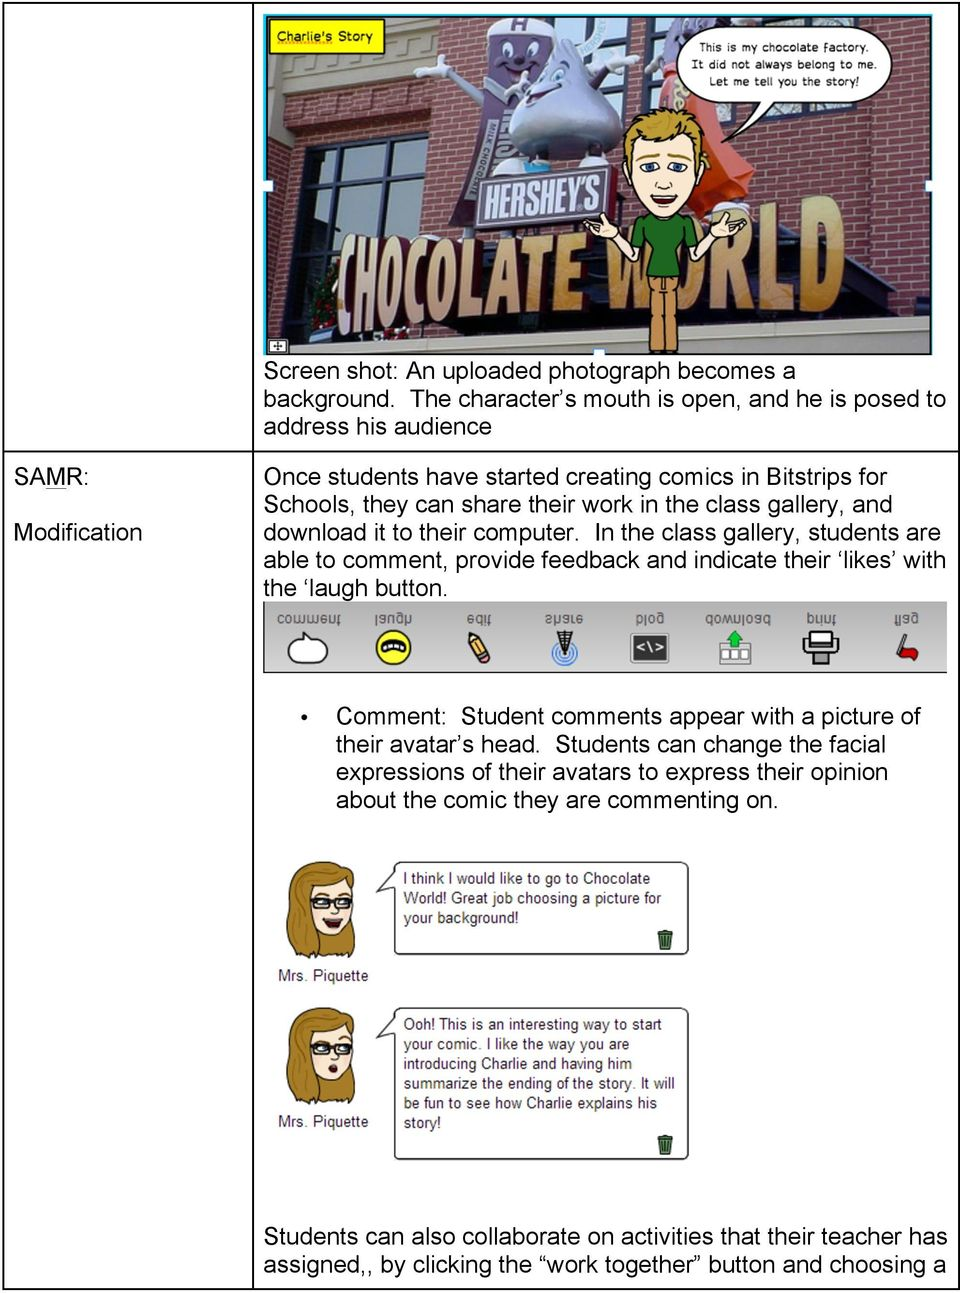 in the class gallery, and download it to their computer. In the class gallery, students are able to comment, provide feedback and indicate their likes with the laugh button.